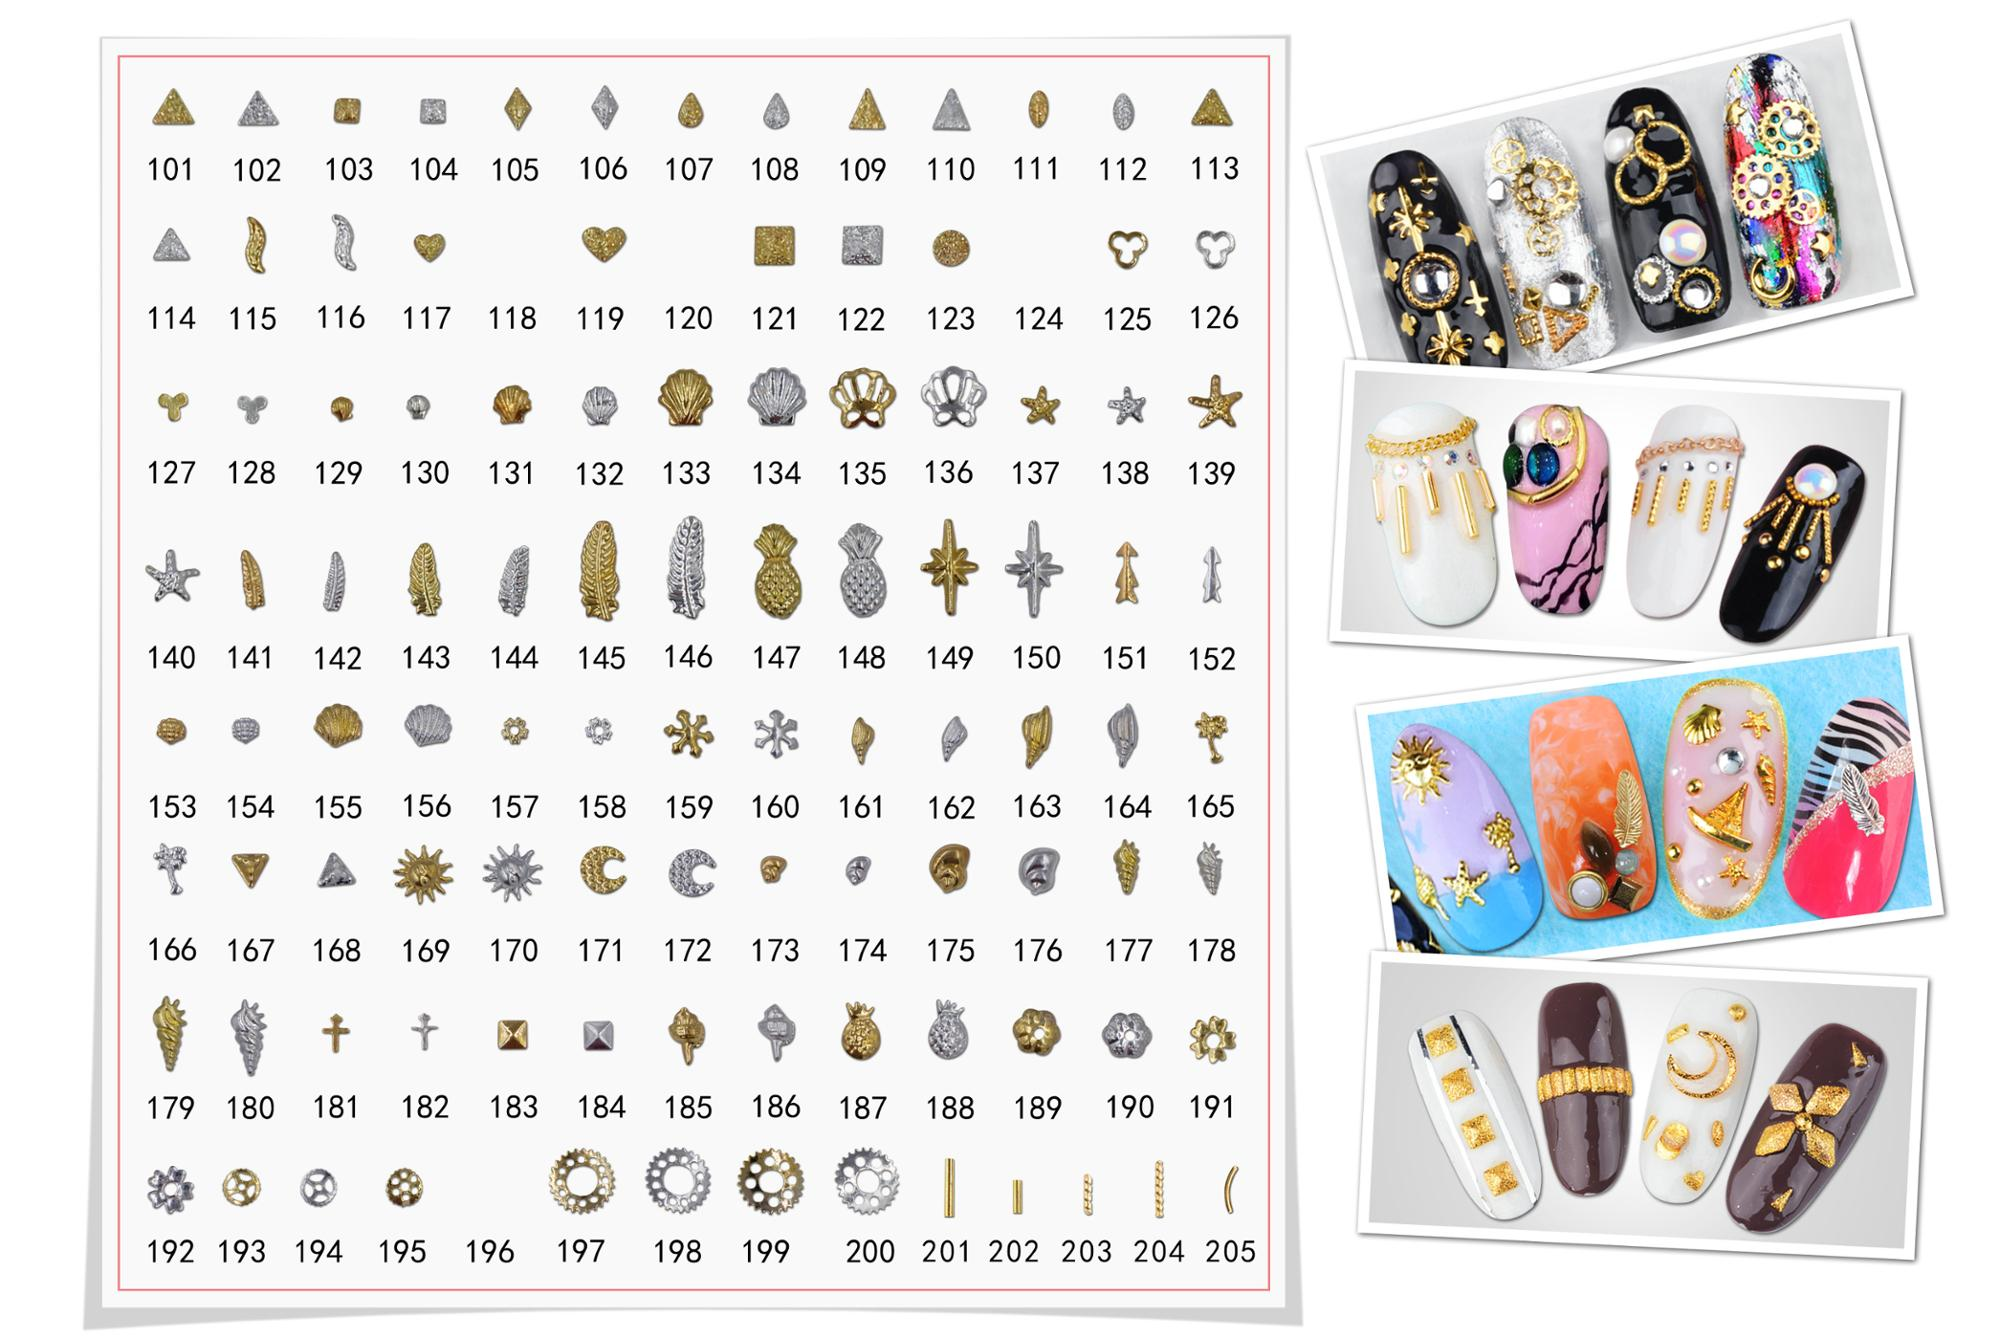 Many colors Zircon Rhinestones nail pixie dusts for nail art designs